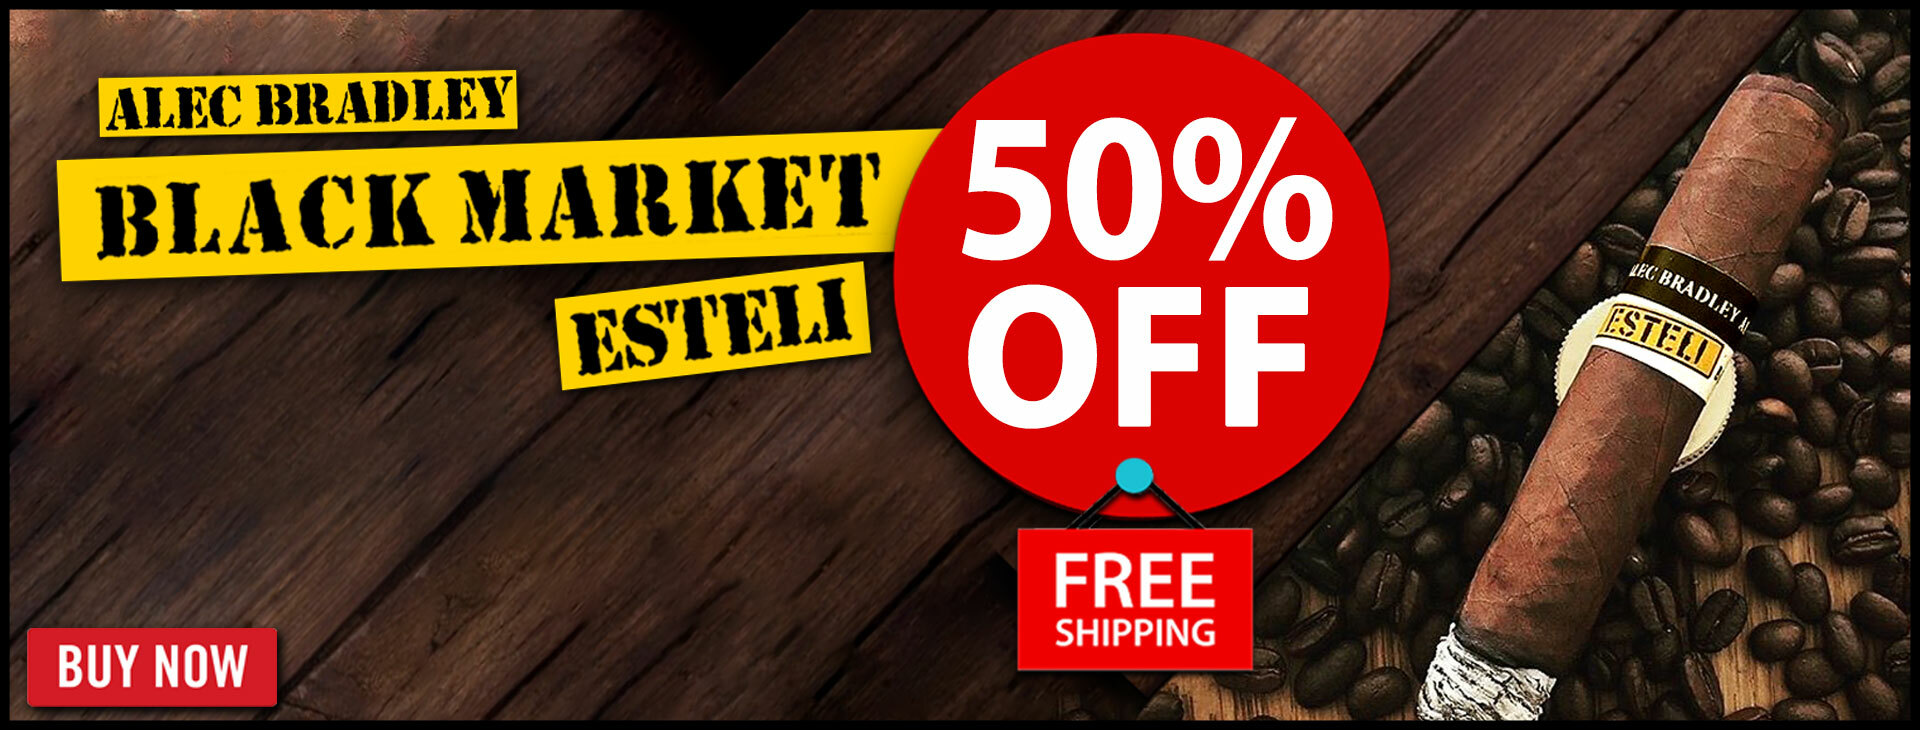 50% OFF Black Market by Alec Bradley - RARE DEAL!